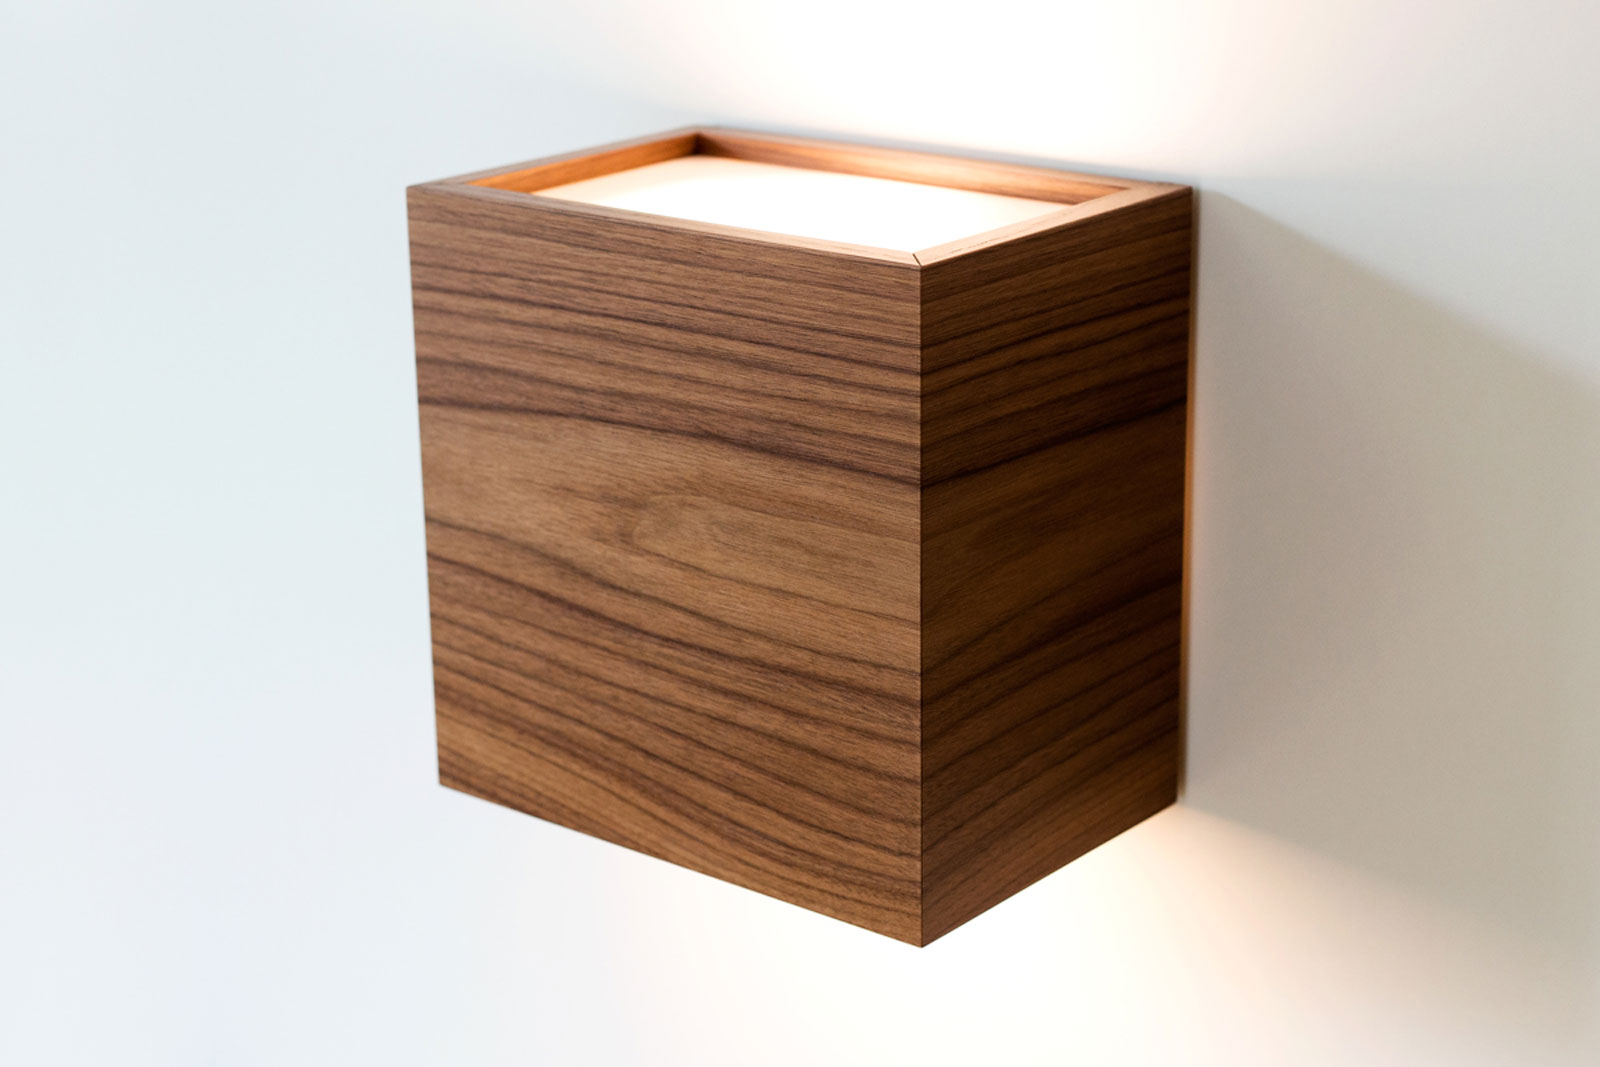 Wall lamps made of real wood veneer by Holzled